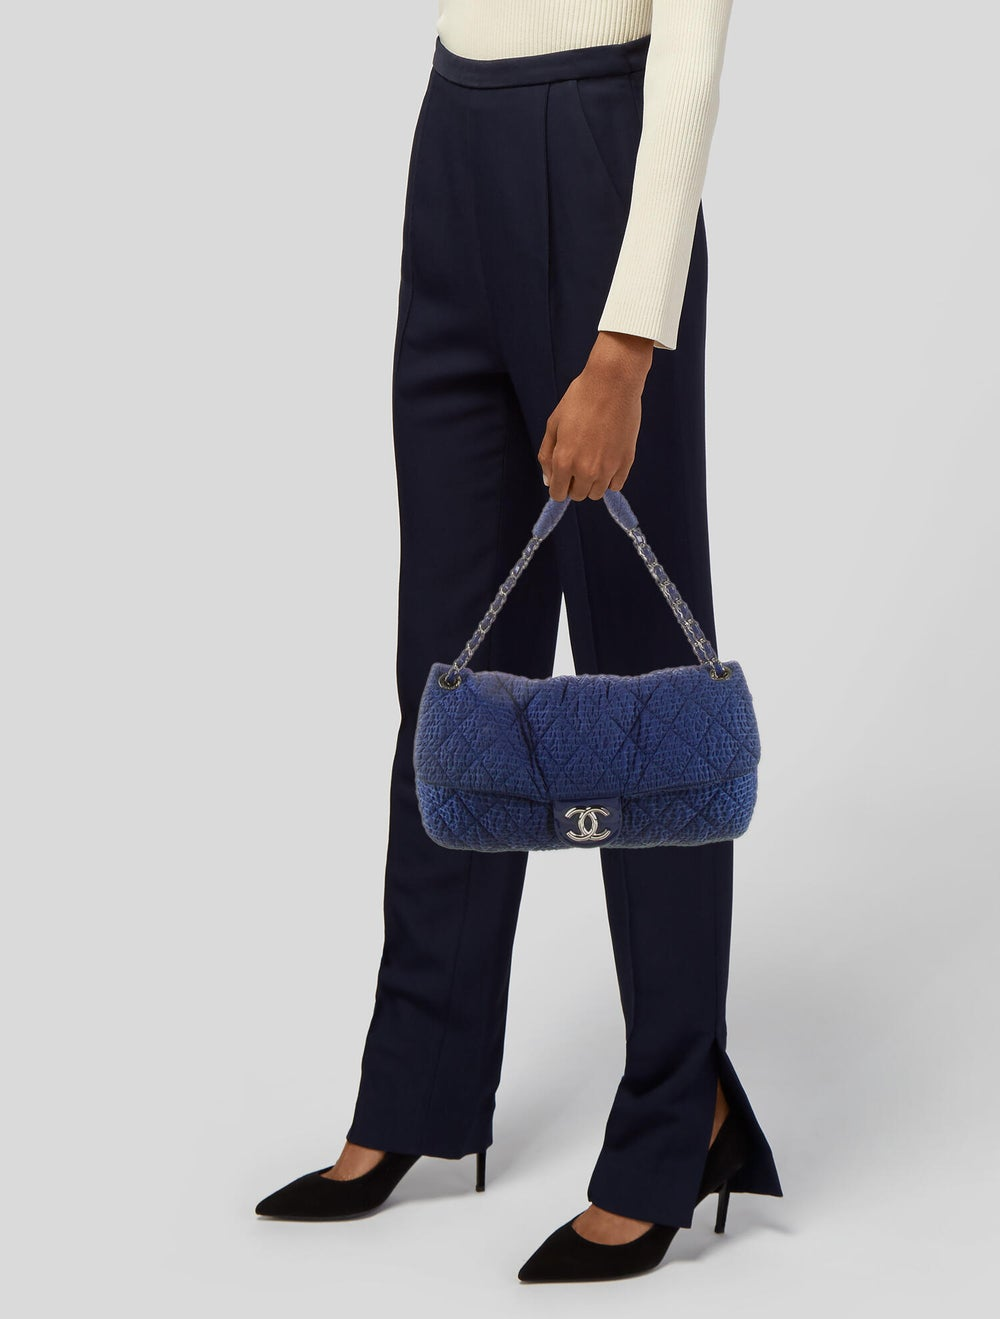 Chanel Cloquee Flap Bag Blue - image 2